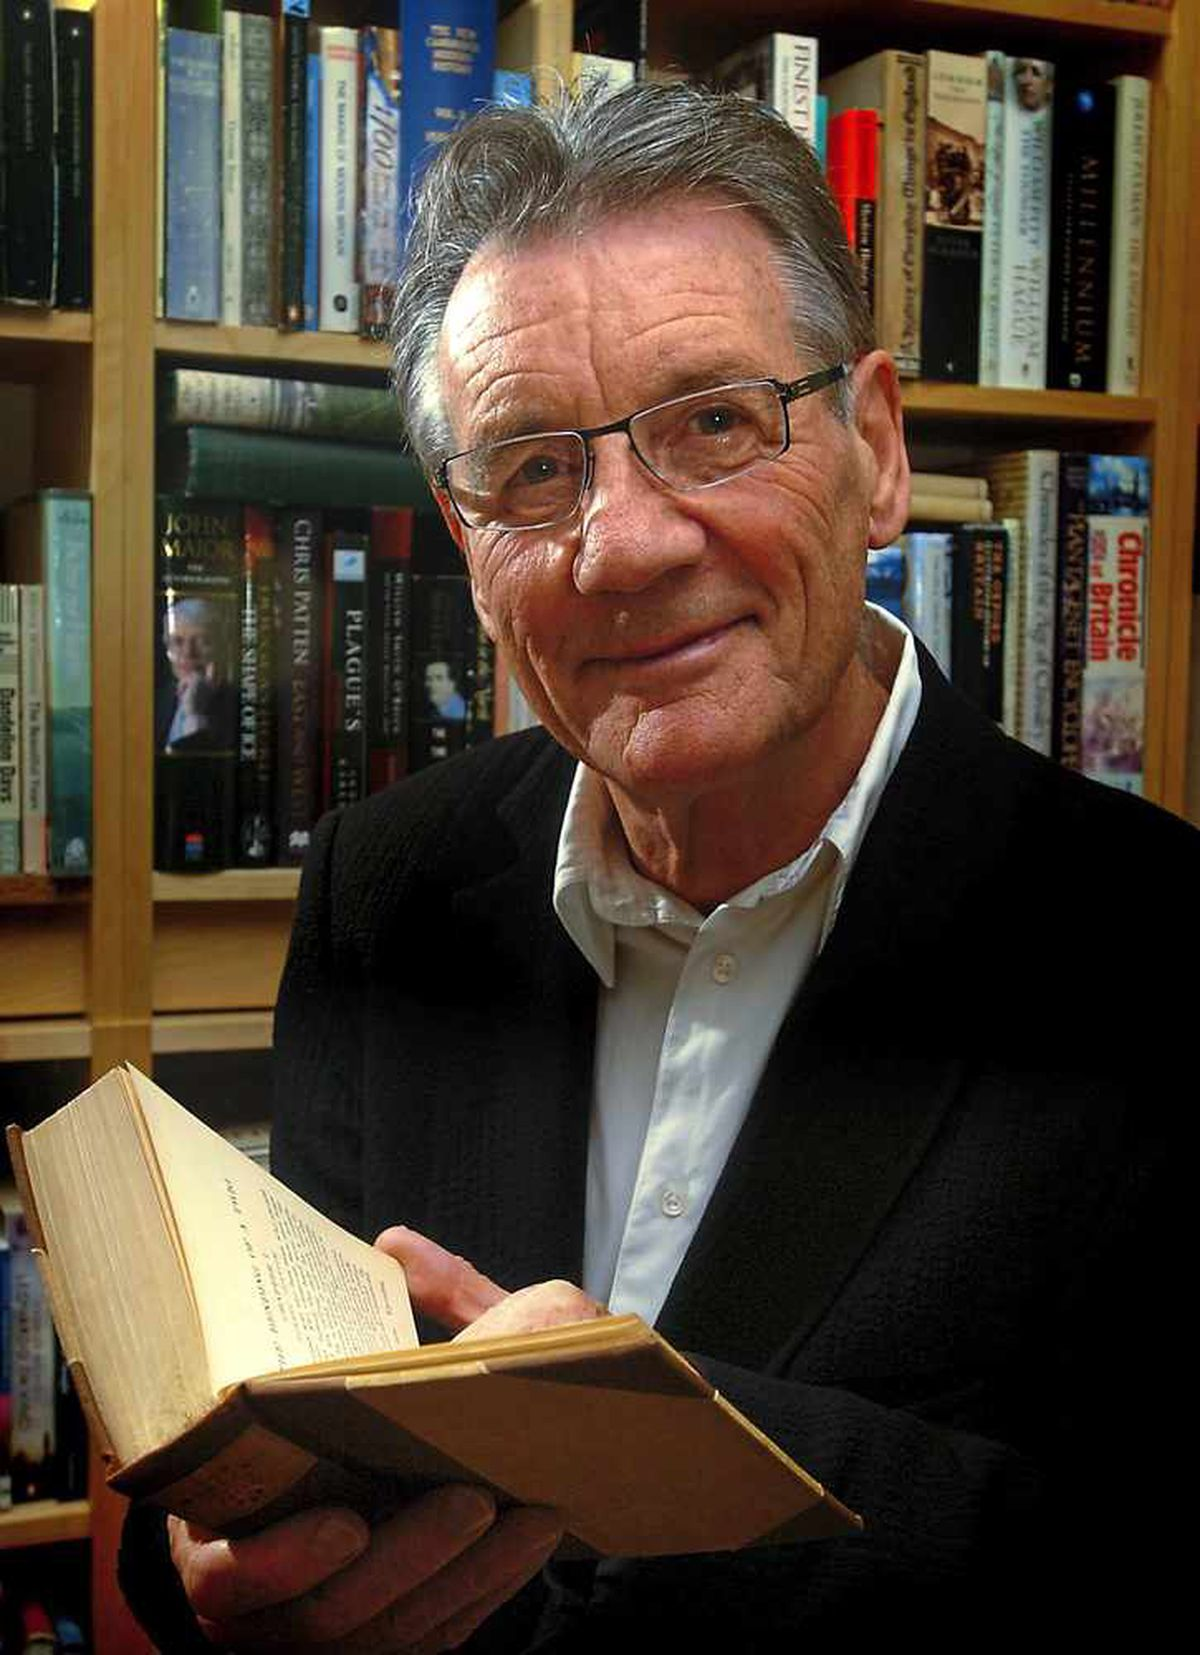 Michael Palin on a visit to his former school Shrewsbury School to give a lecture